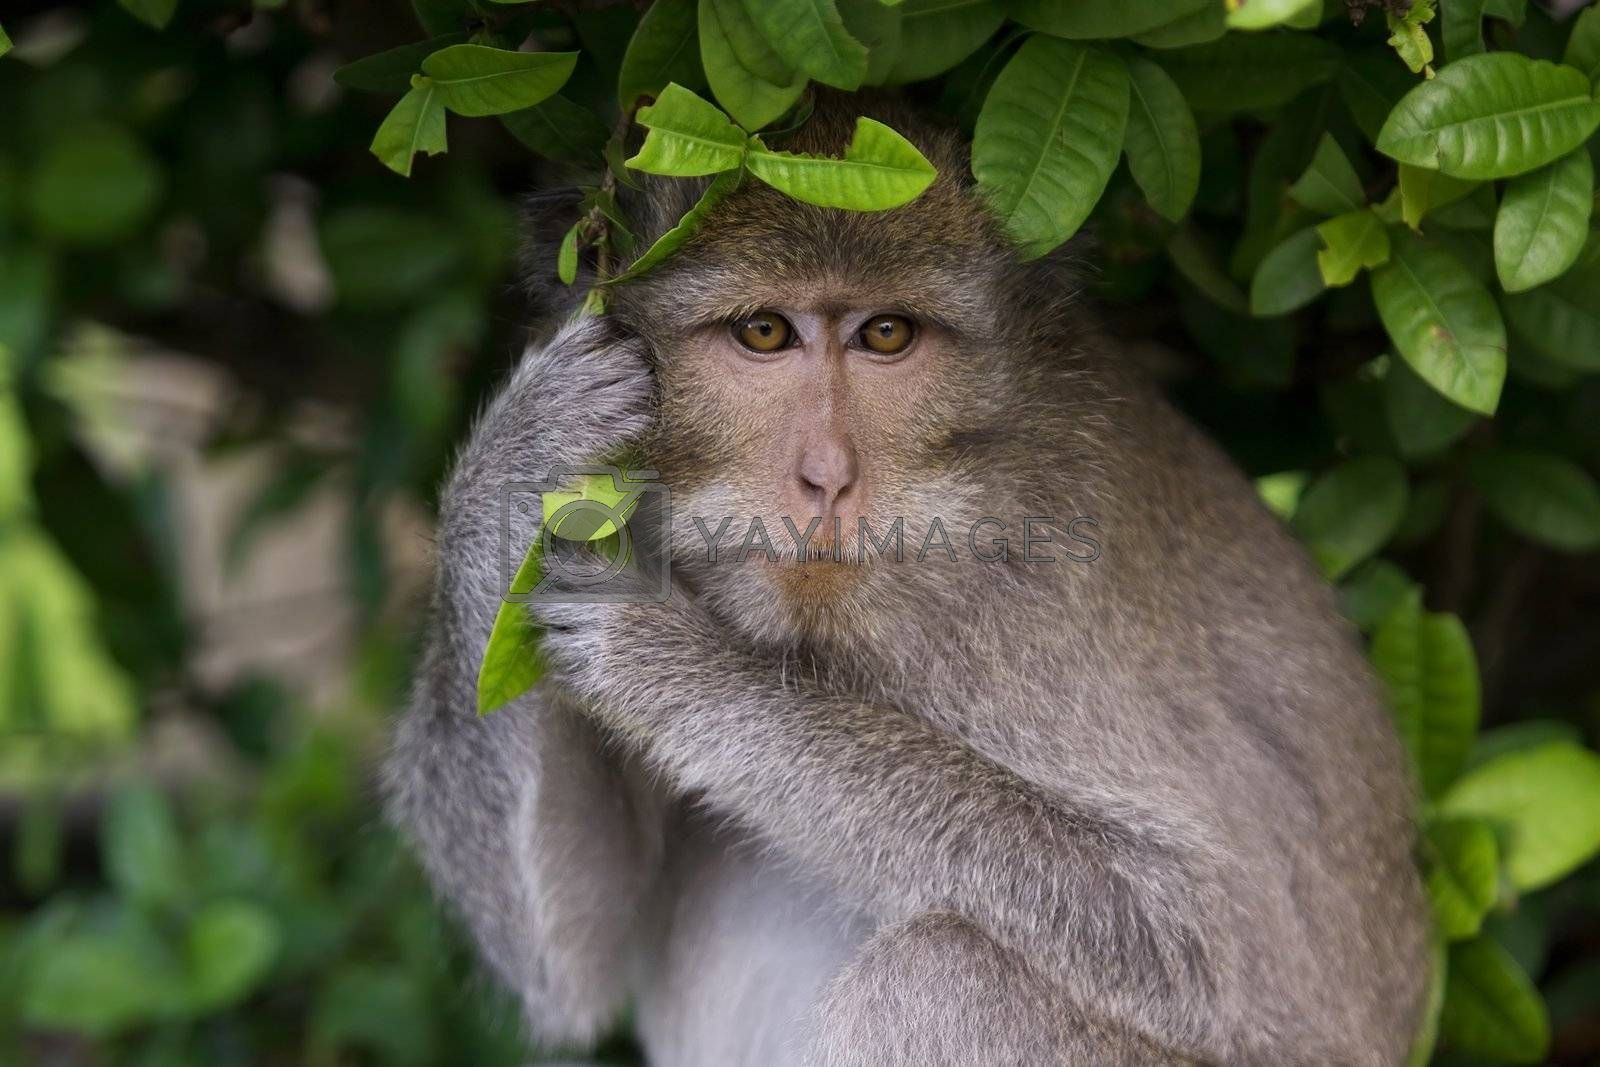 A macaque monkey in Bali, Indonesia